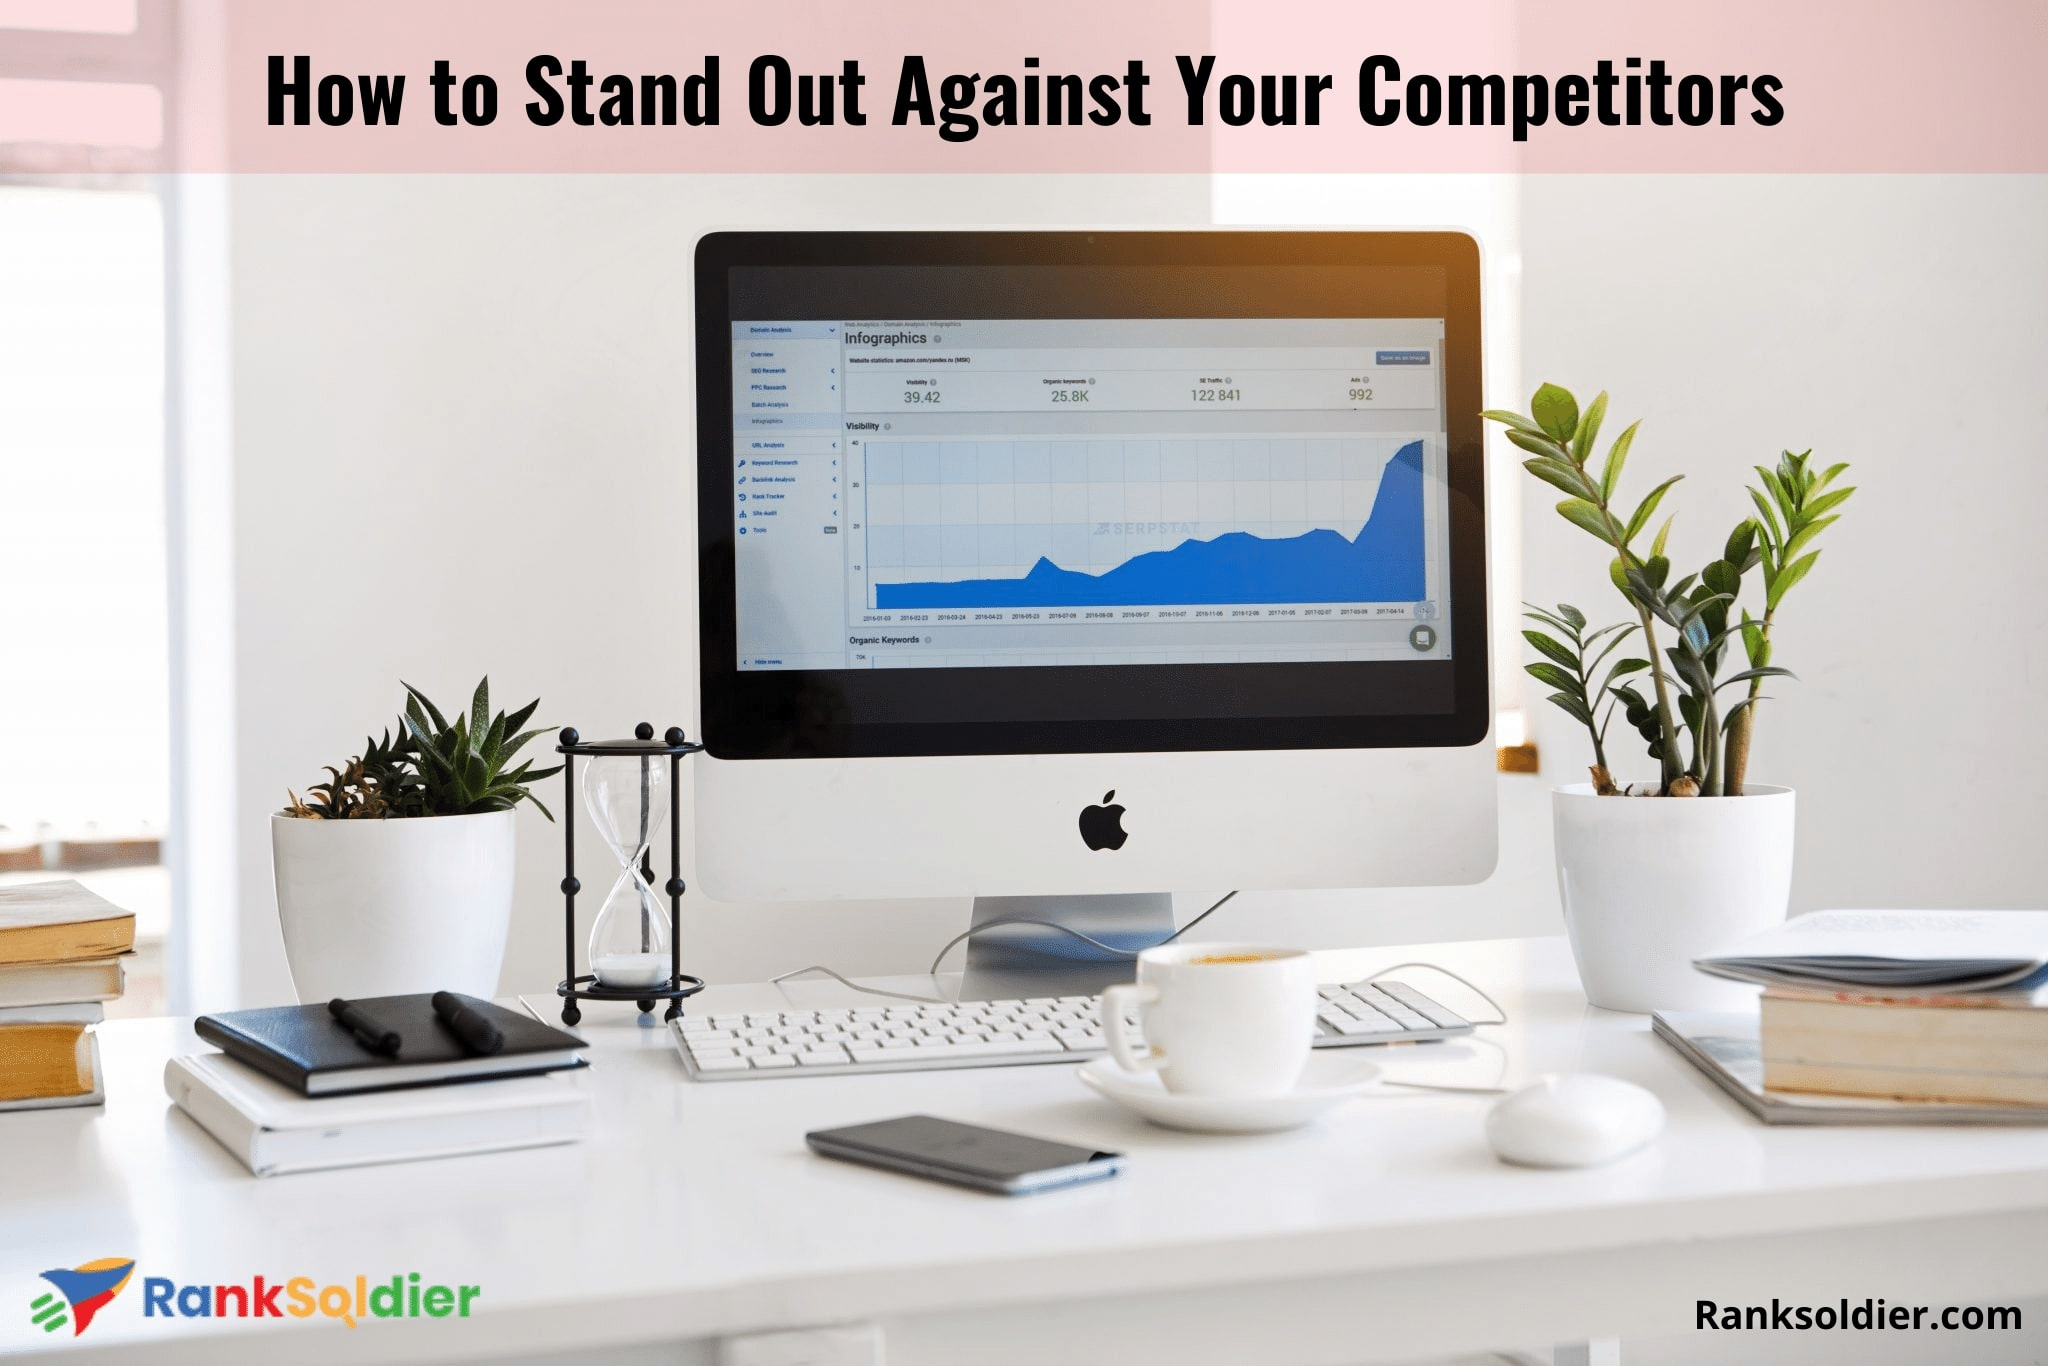 How to Stand Out Against Your Competitors